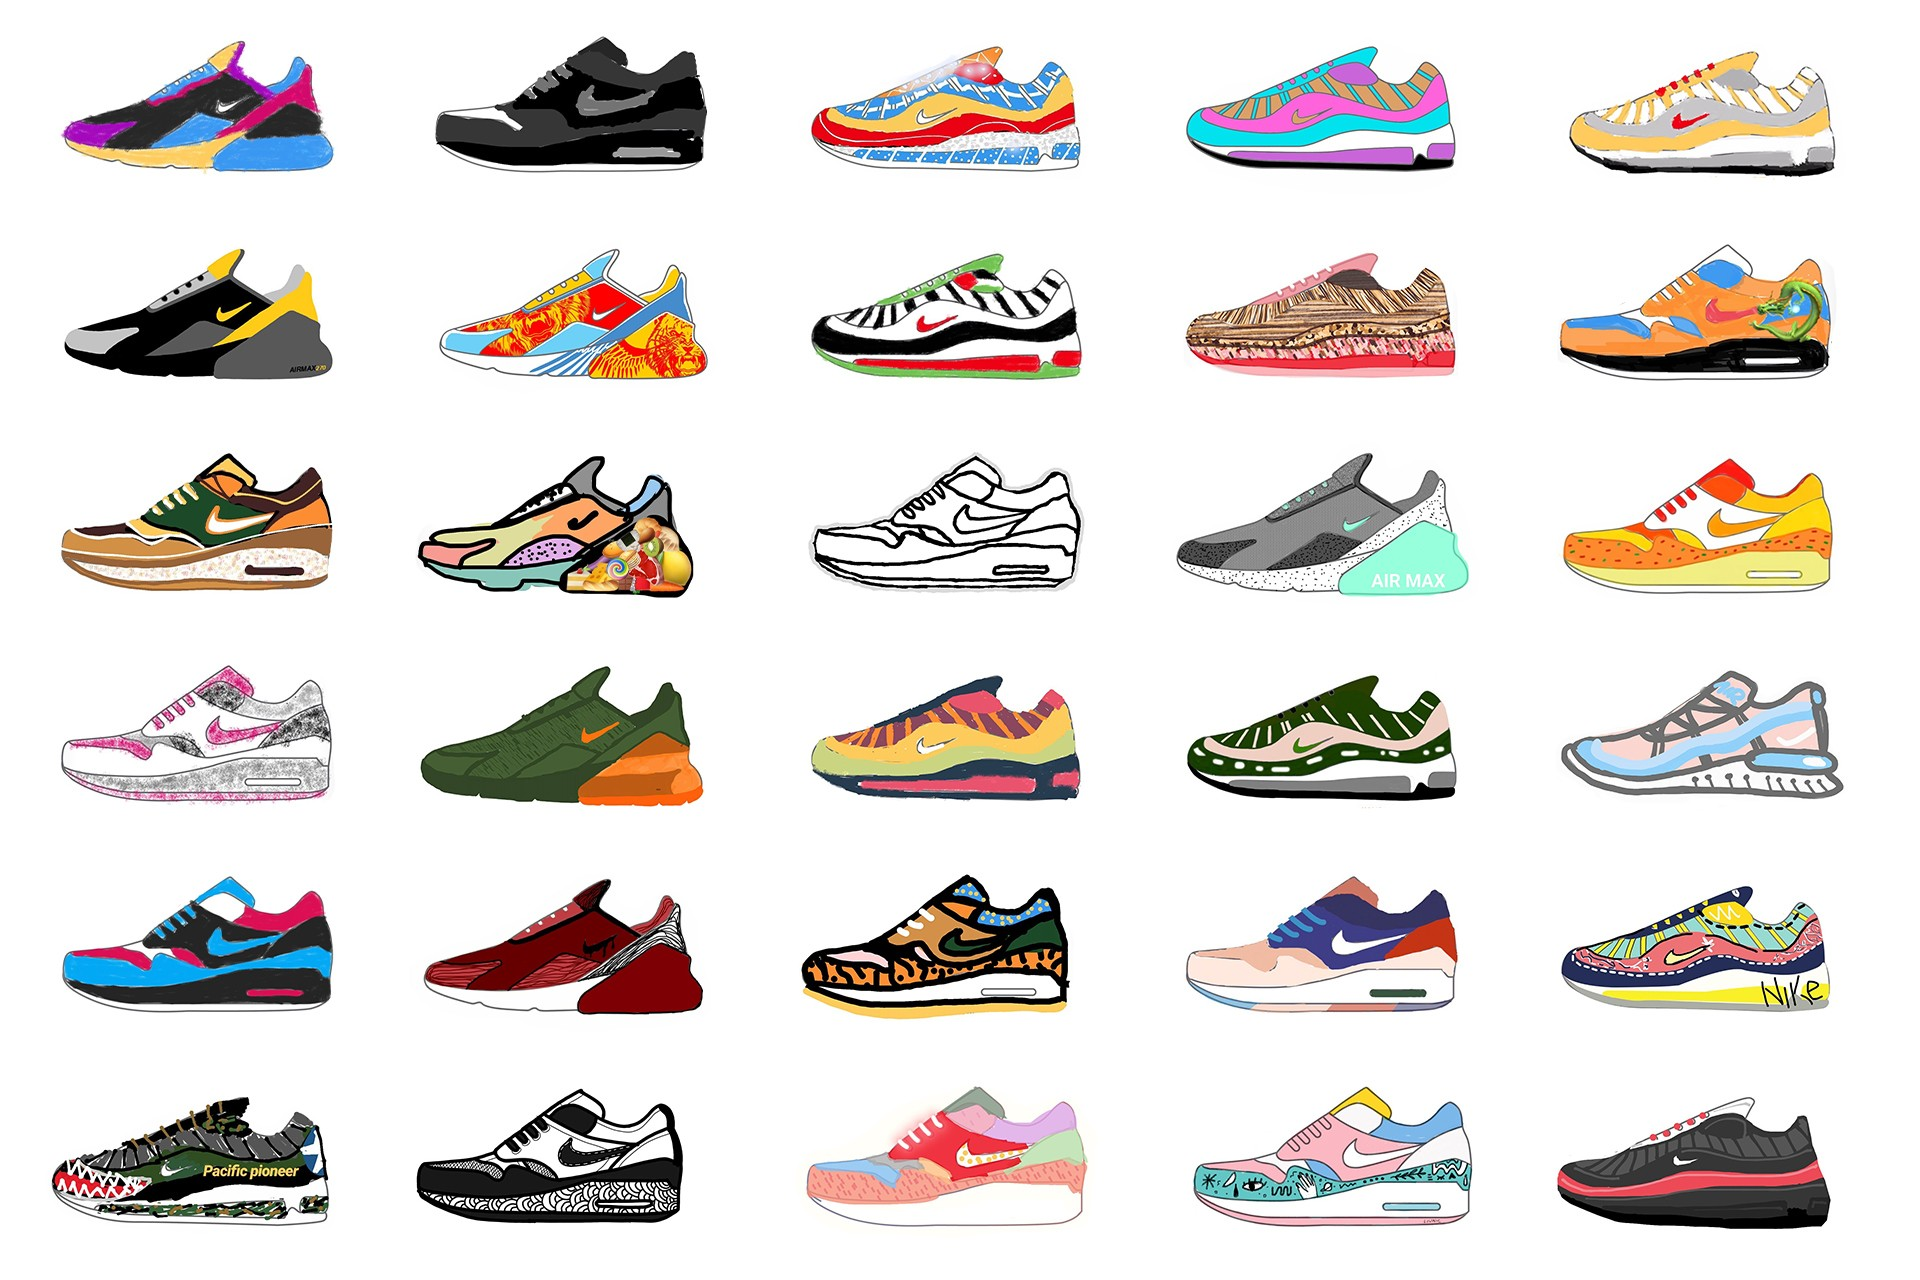 Studio 1212 | Project Whiteboard Journal x Air Max Day 2018